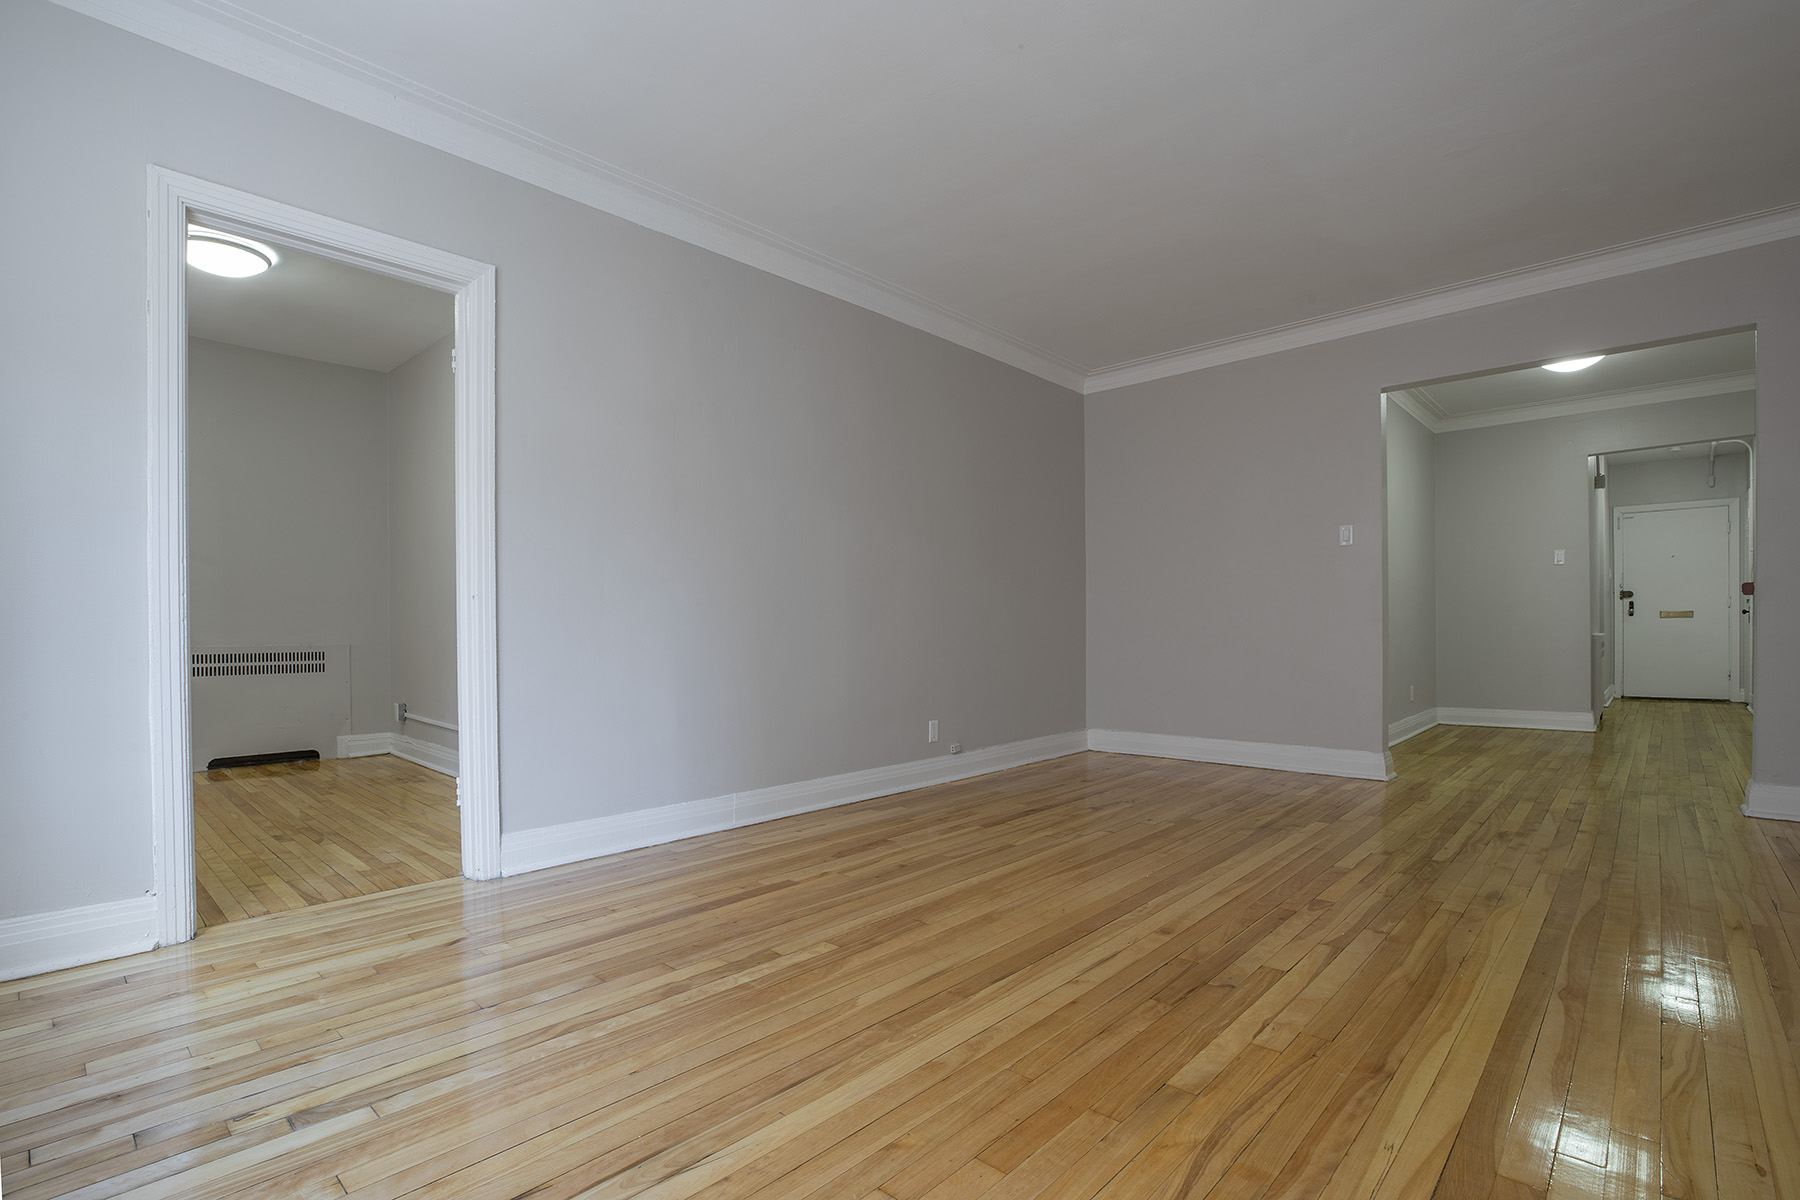 3 bedroom Apartments for rent in Cote-des-Neiges at 5000 Clanranald - Photo 12 - RentQuebecApartments – L401549